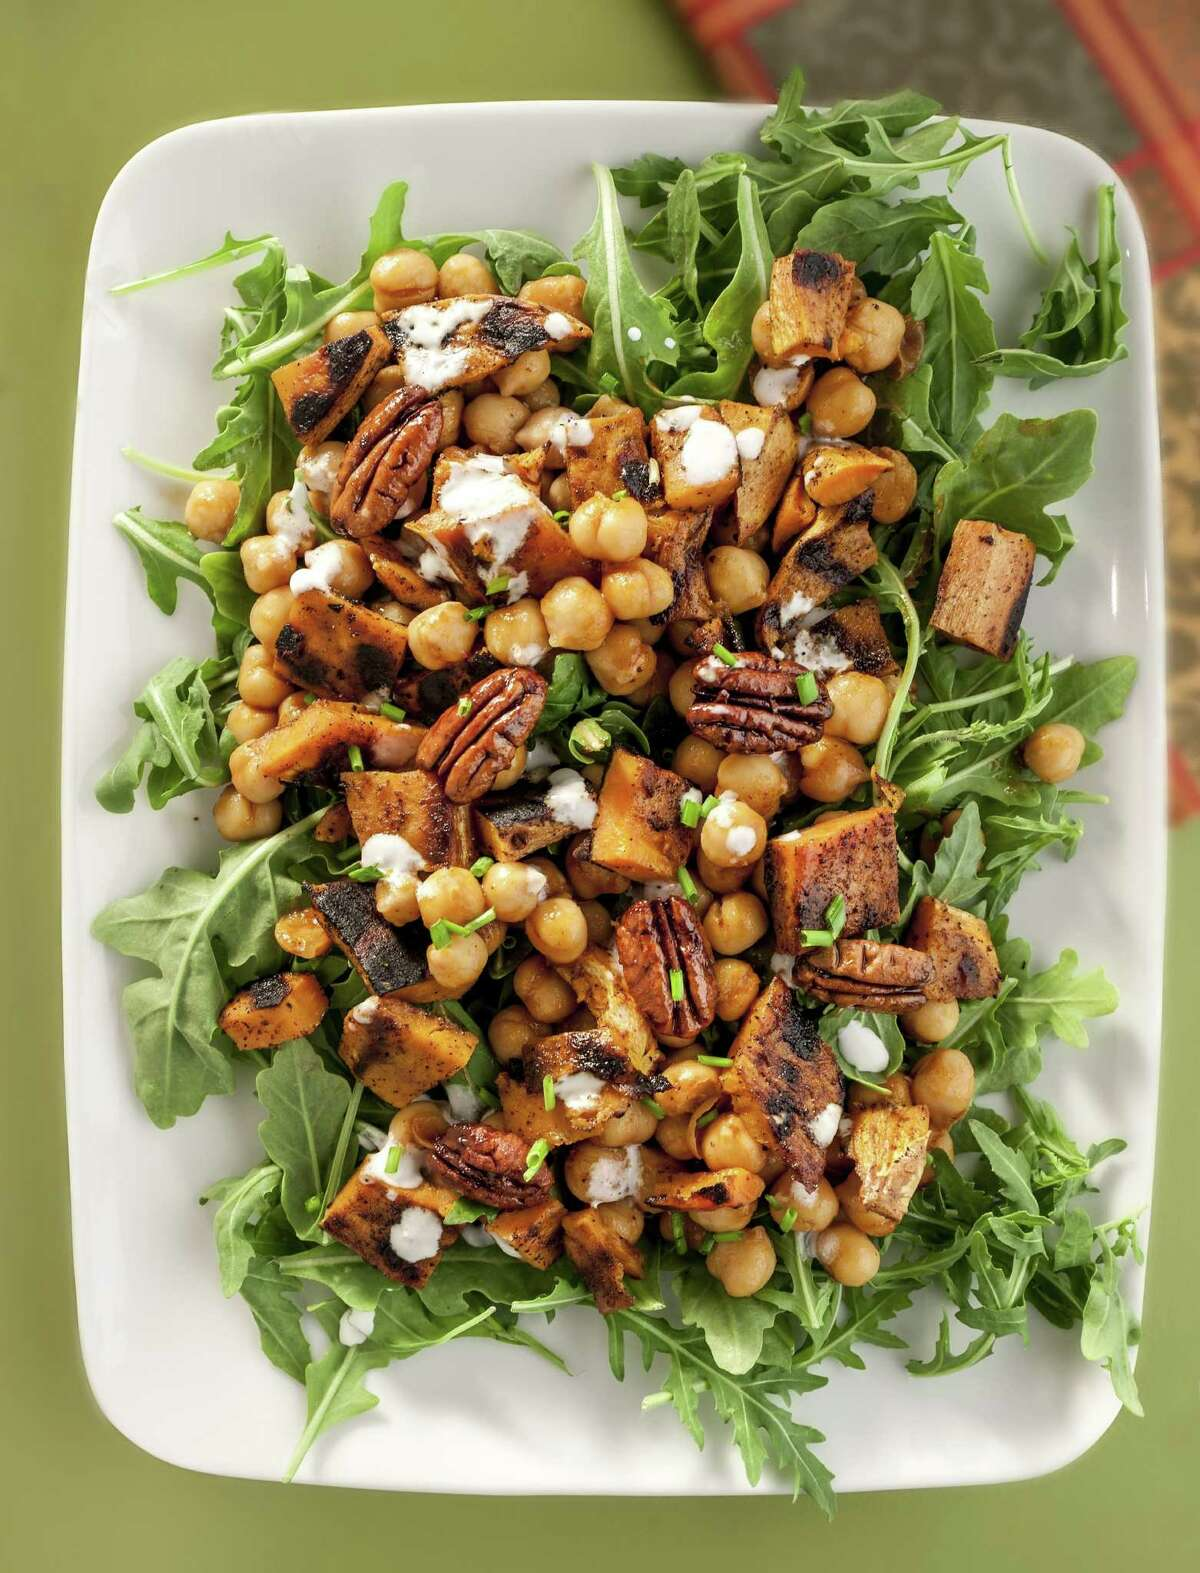 Featured here, barbecue sweet potato with arugula and pecans. (Bill Hogan/Chicago Tribune/MCT)